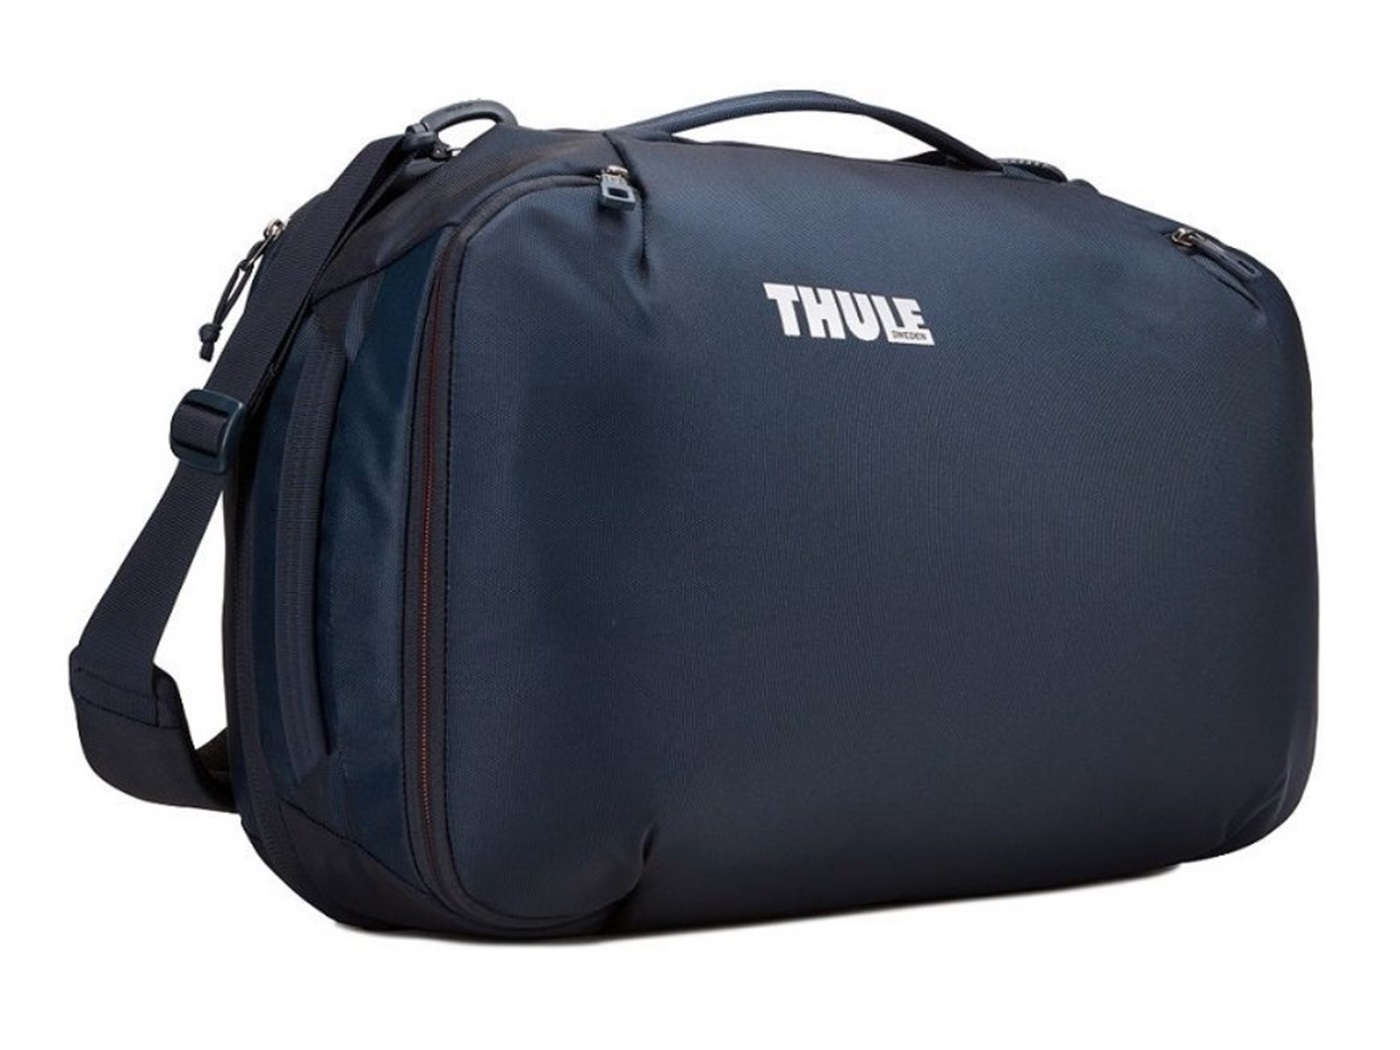 Univerzalni ruksak/torba Thule Subterra Carry-On 40L